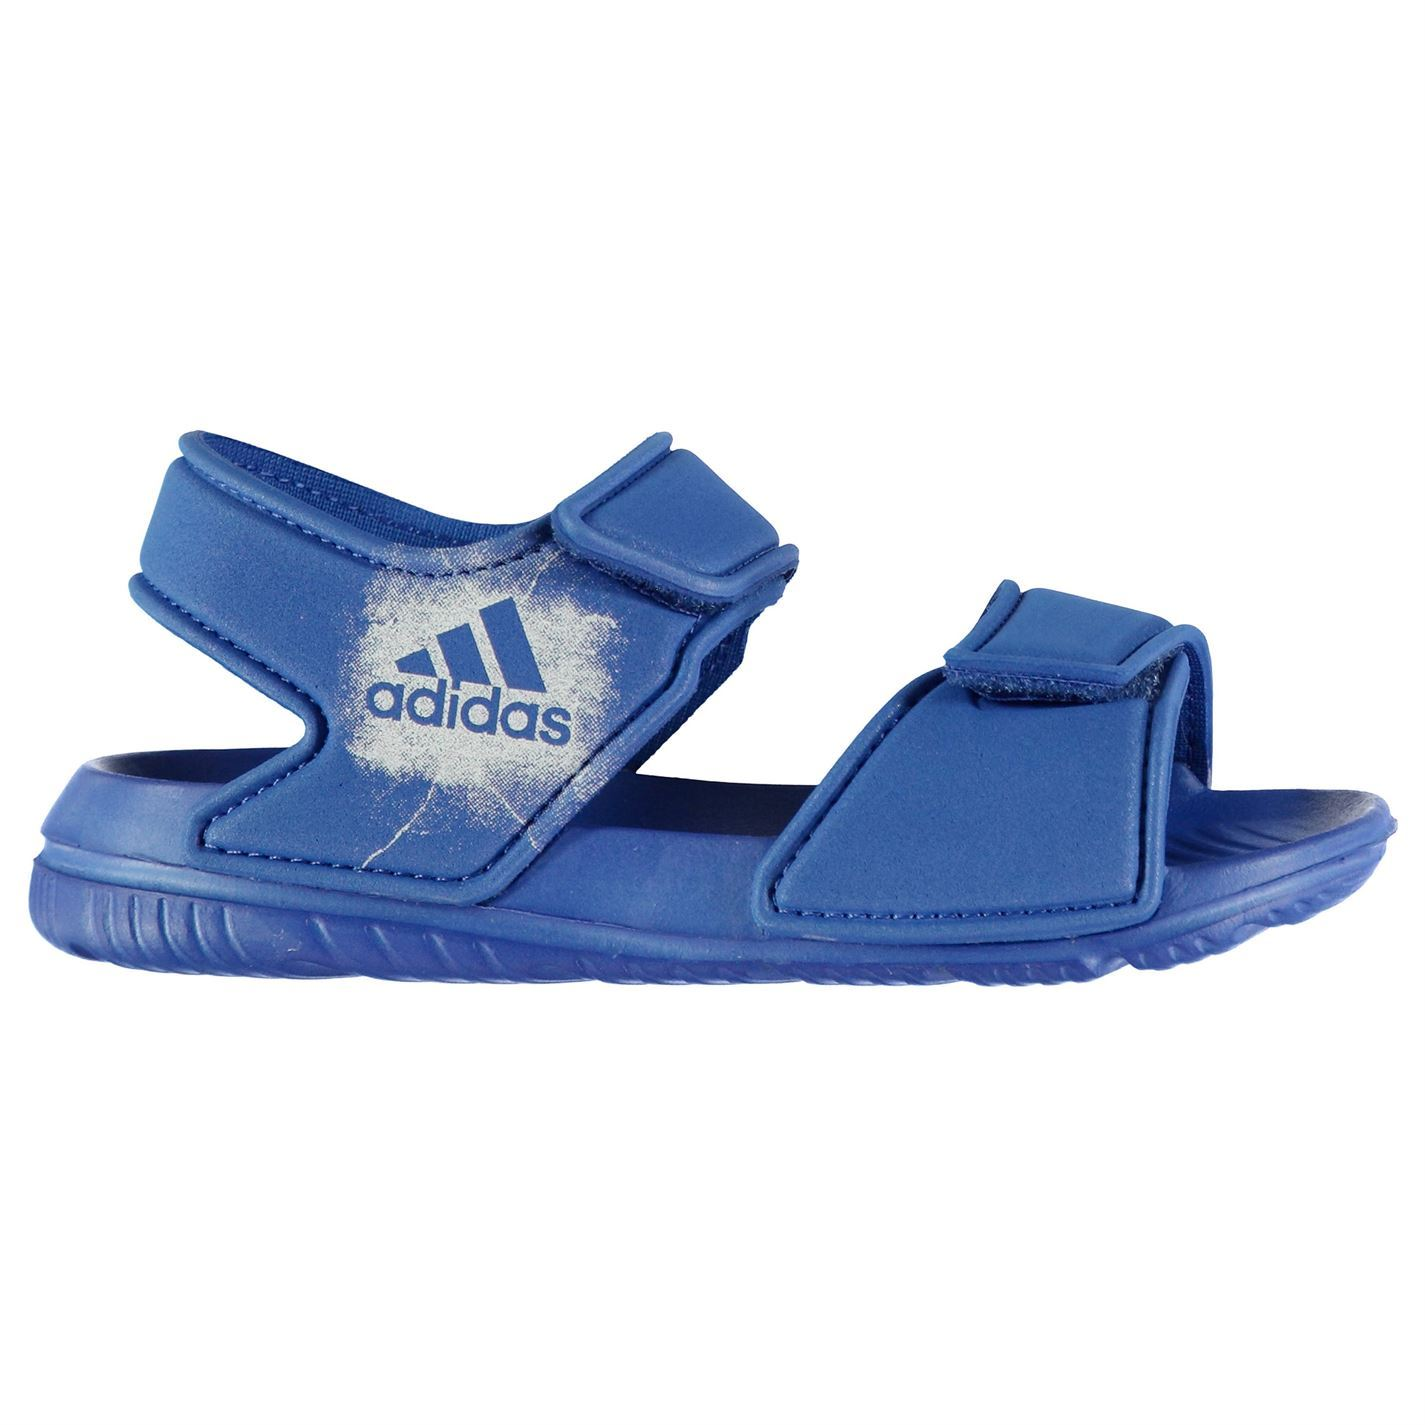 separation shoes c2cf7 0ec05 ... on sale 4aa12 60509 adidas-Alta-Swim-Sandals-Infants-Boys- ...